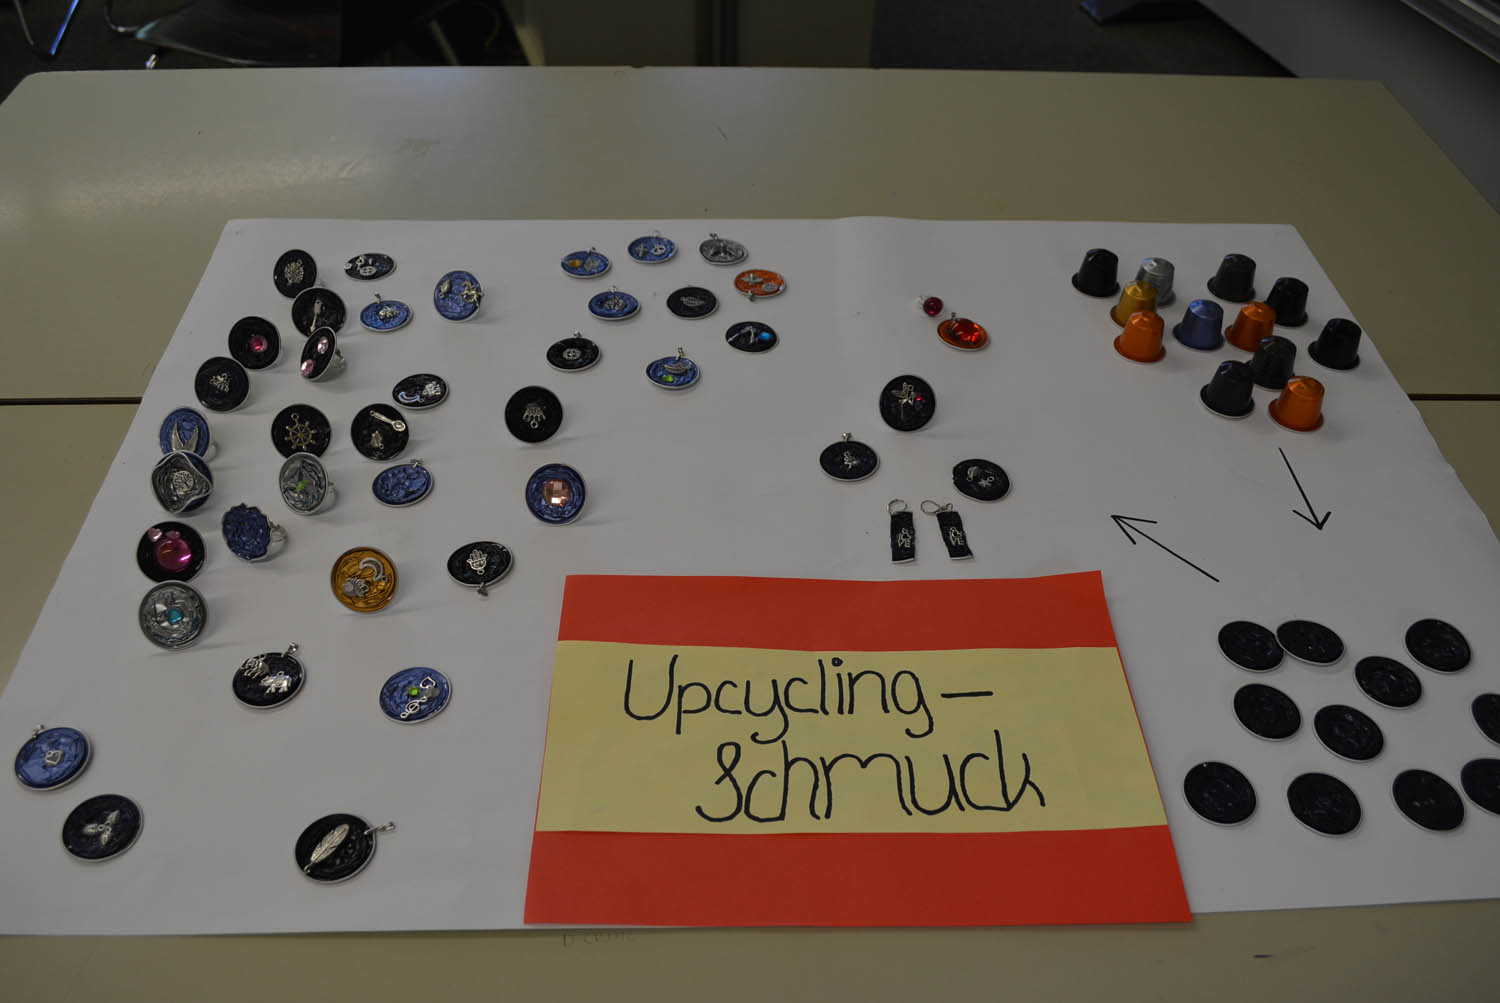 Ludwig-Auer-Schule M7 Upcycling 3